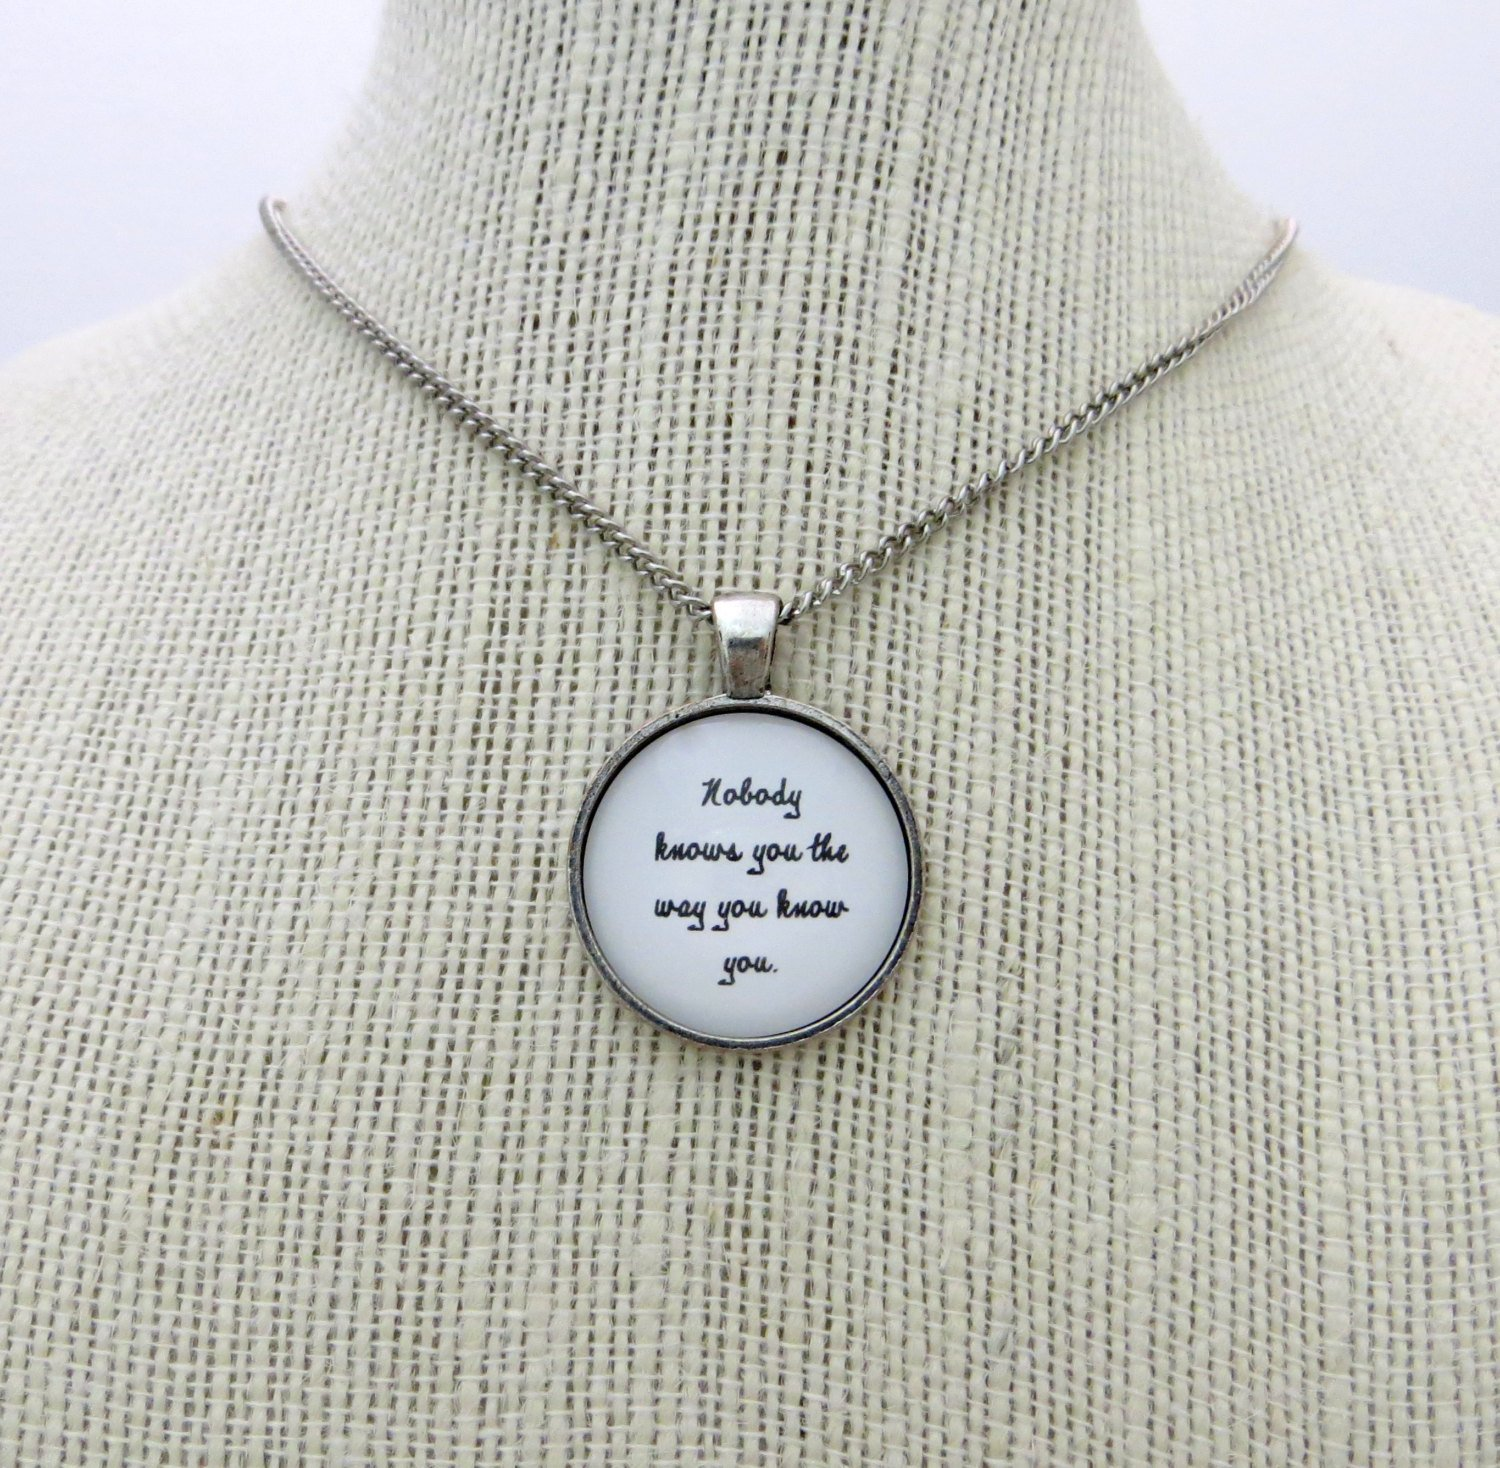 Passion Pit Seaweed Song Inspired Lyrical Quote Pendant Necklace (Silver, 18 inches)